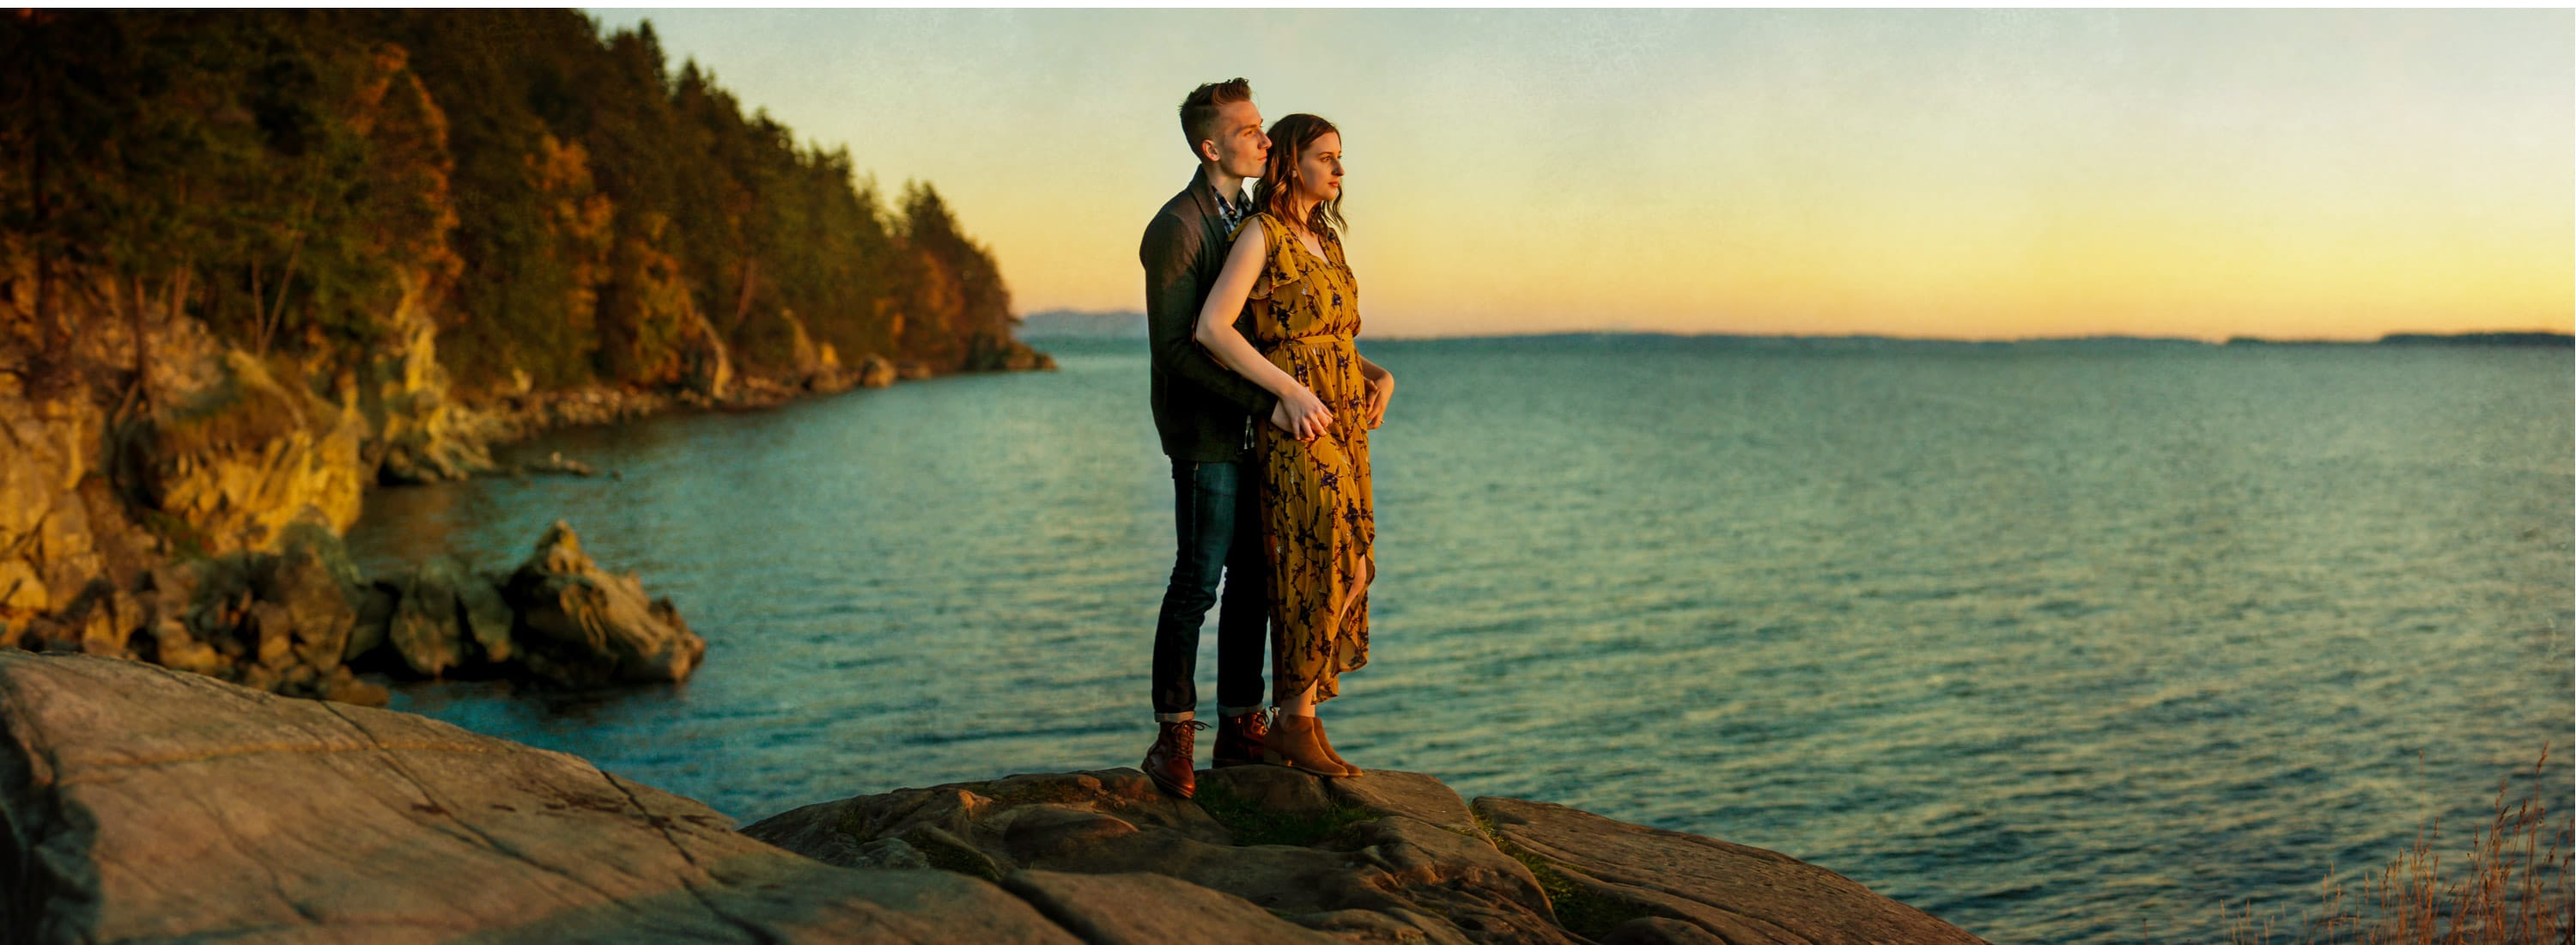 pnw adventure engagement session in bellingham wa fall photo inspiration larrabee sunset